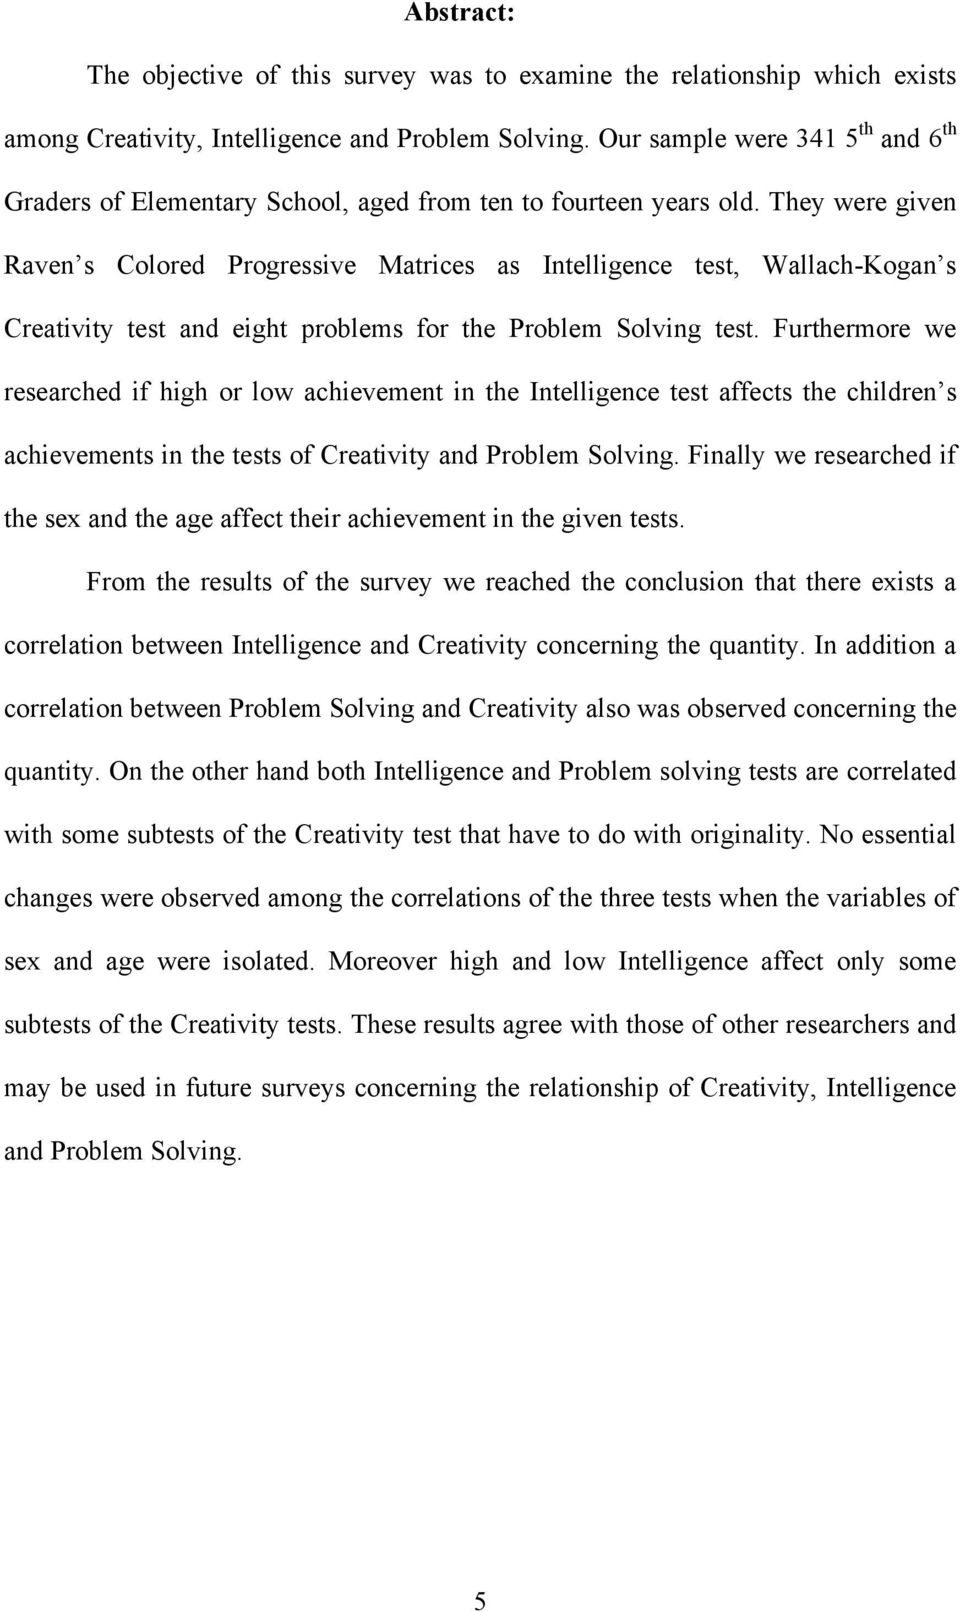 They were given Raven s Colored Progressive Matrices as Intelligence test, Wallach-Kogan s Creativity test and eight problems for the Problem Solving test.